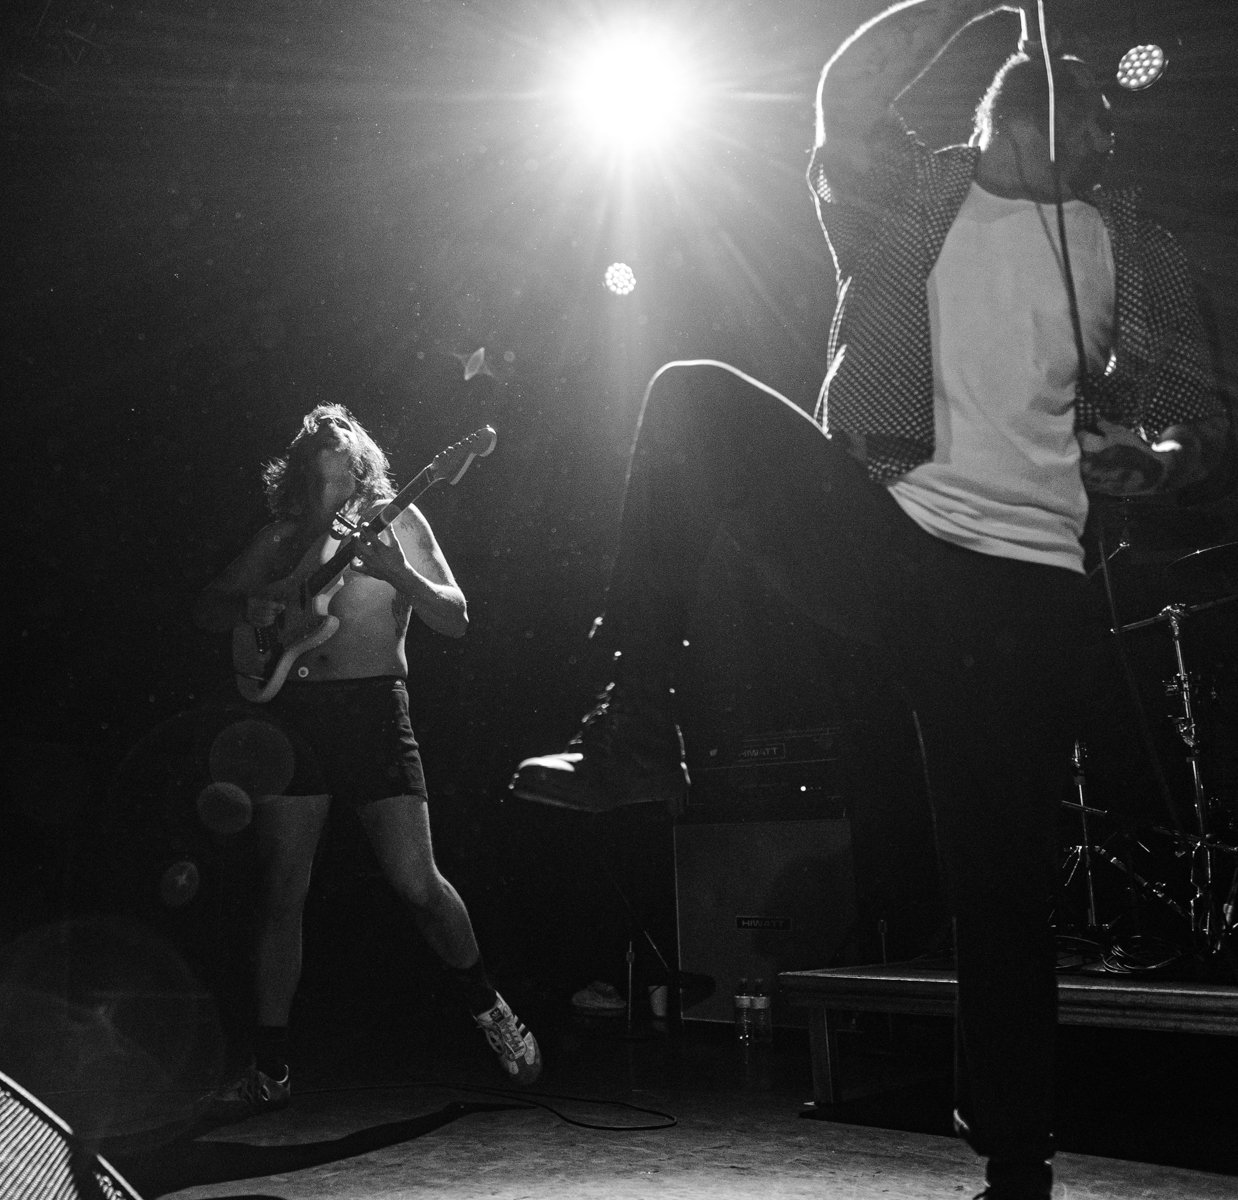 Idles_FirstAvenue_080319_Chris_Goyette_11